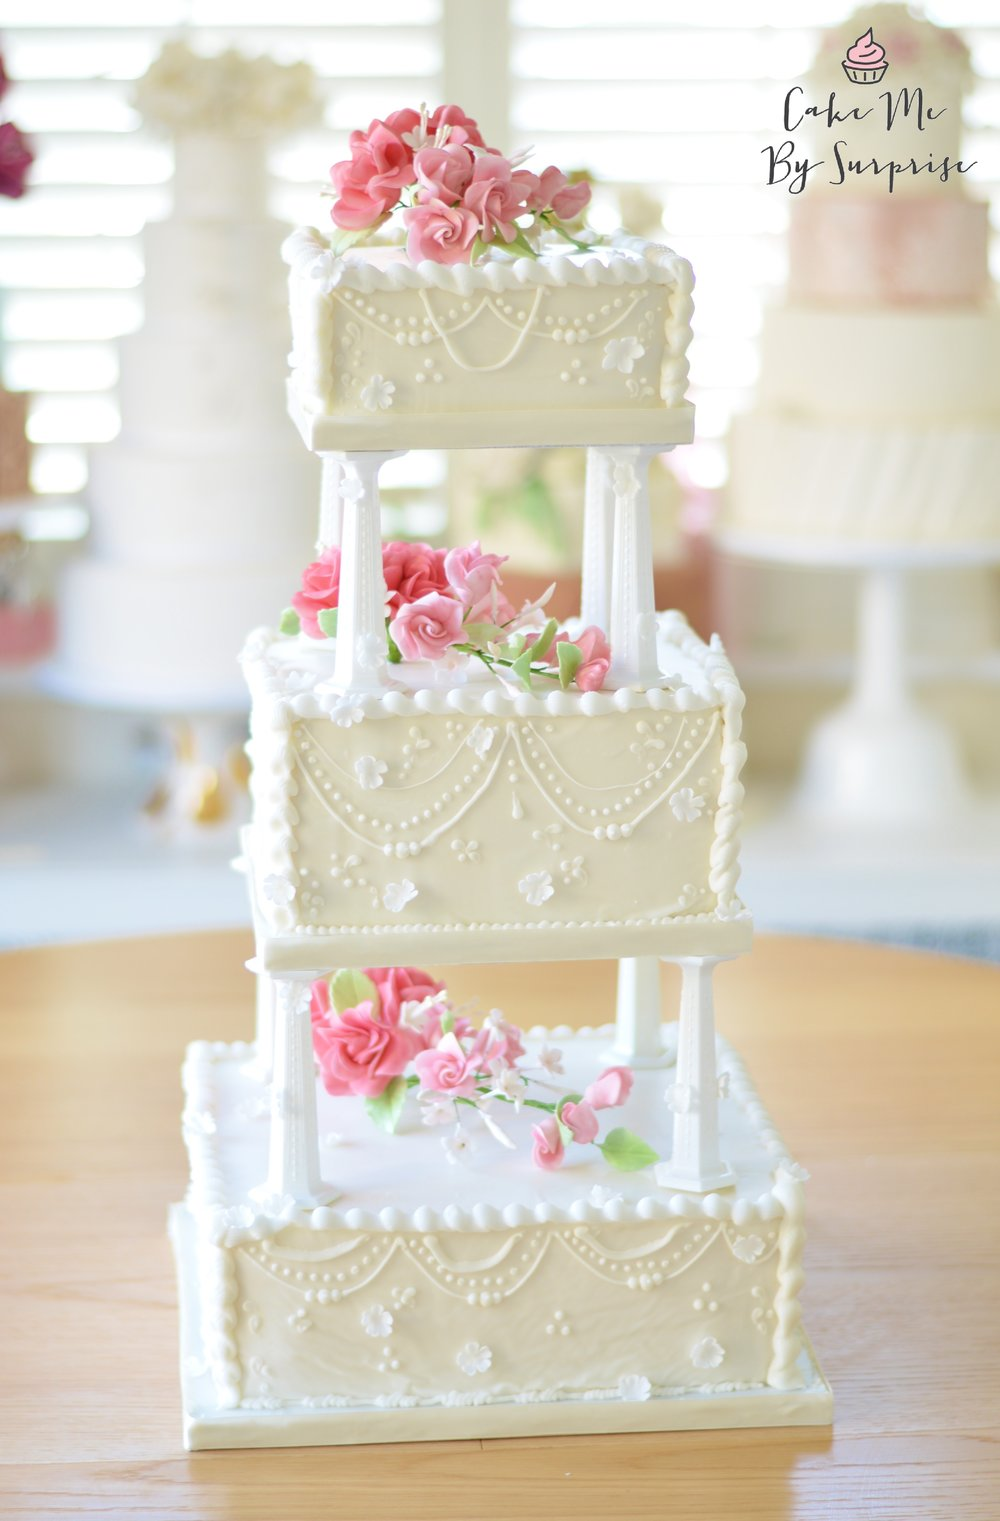 Miriam Three tier 1920's vintage design, named after the Bride herself. A bespoke design finished with ivory royal icing and handcrafted sugar floral sprays. Serves 90+ £500